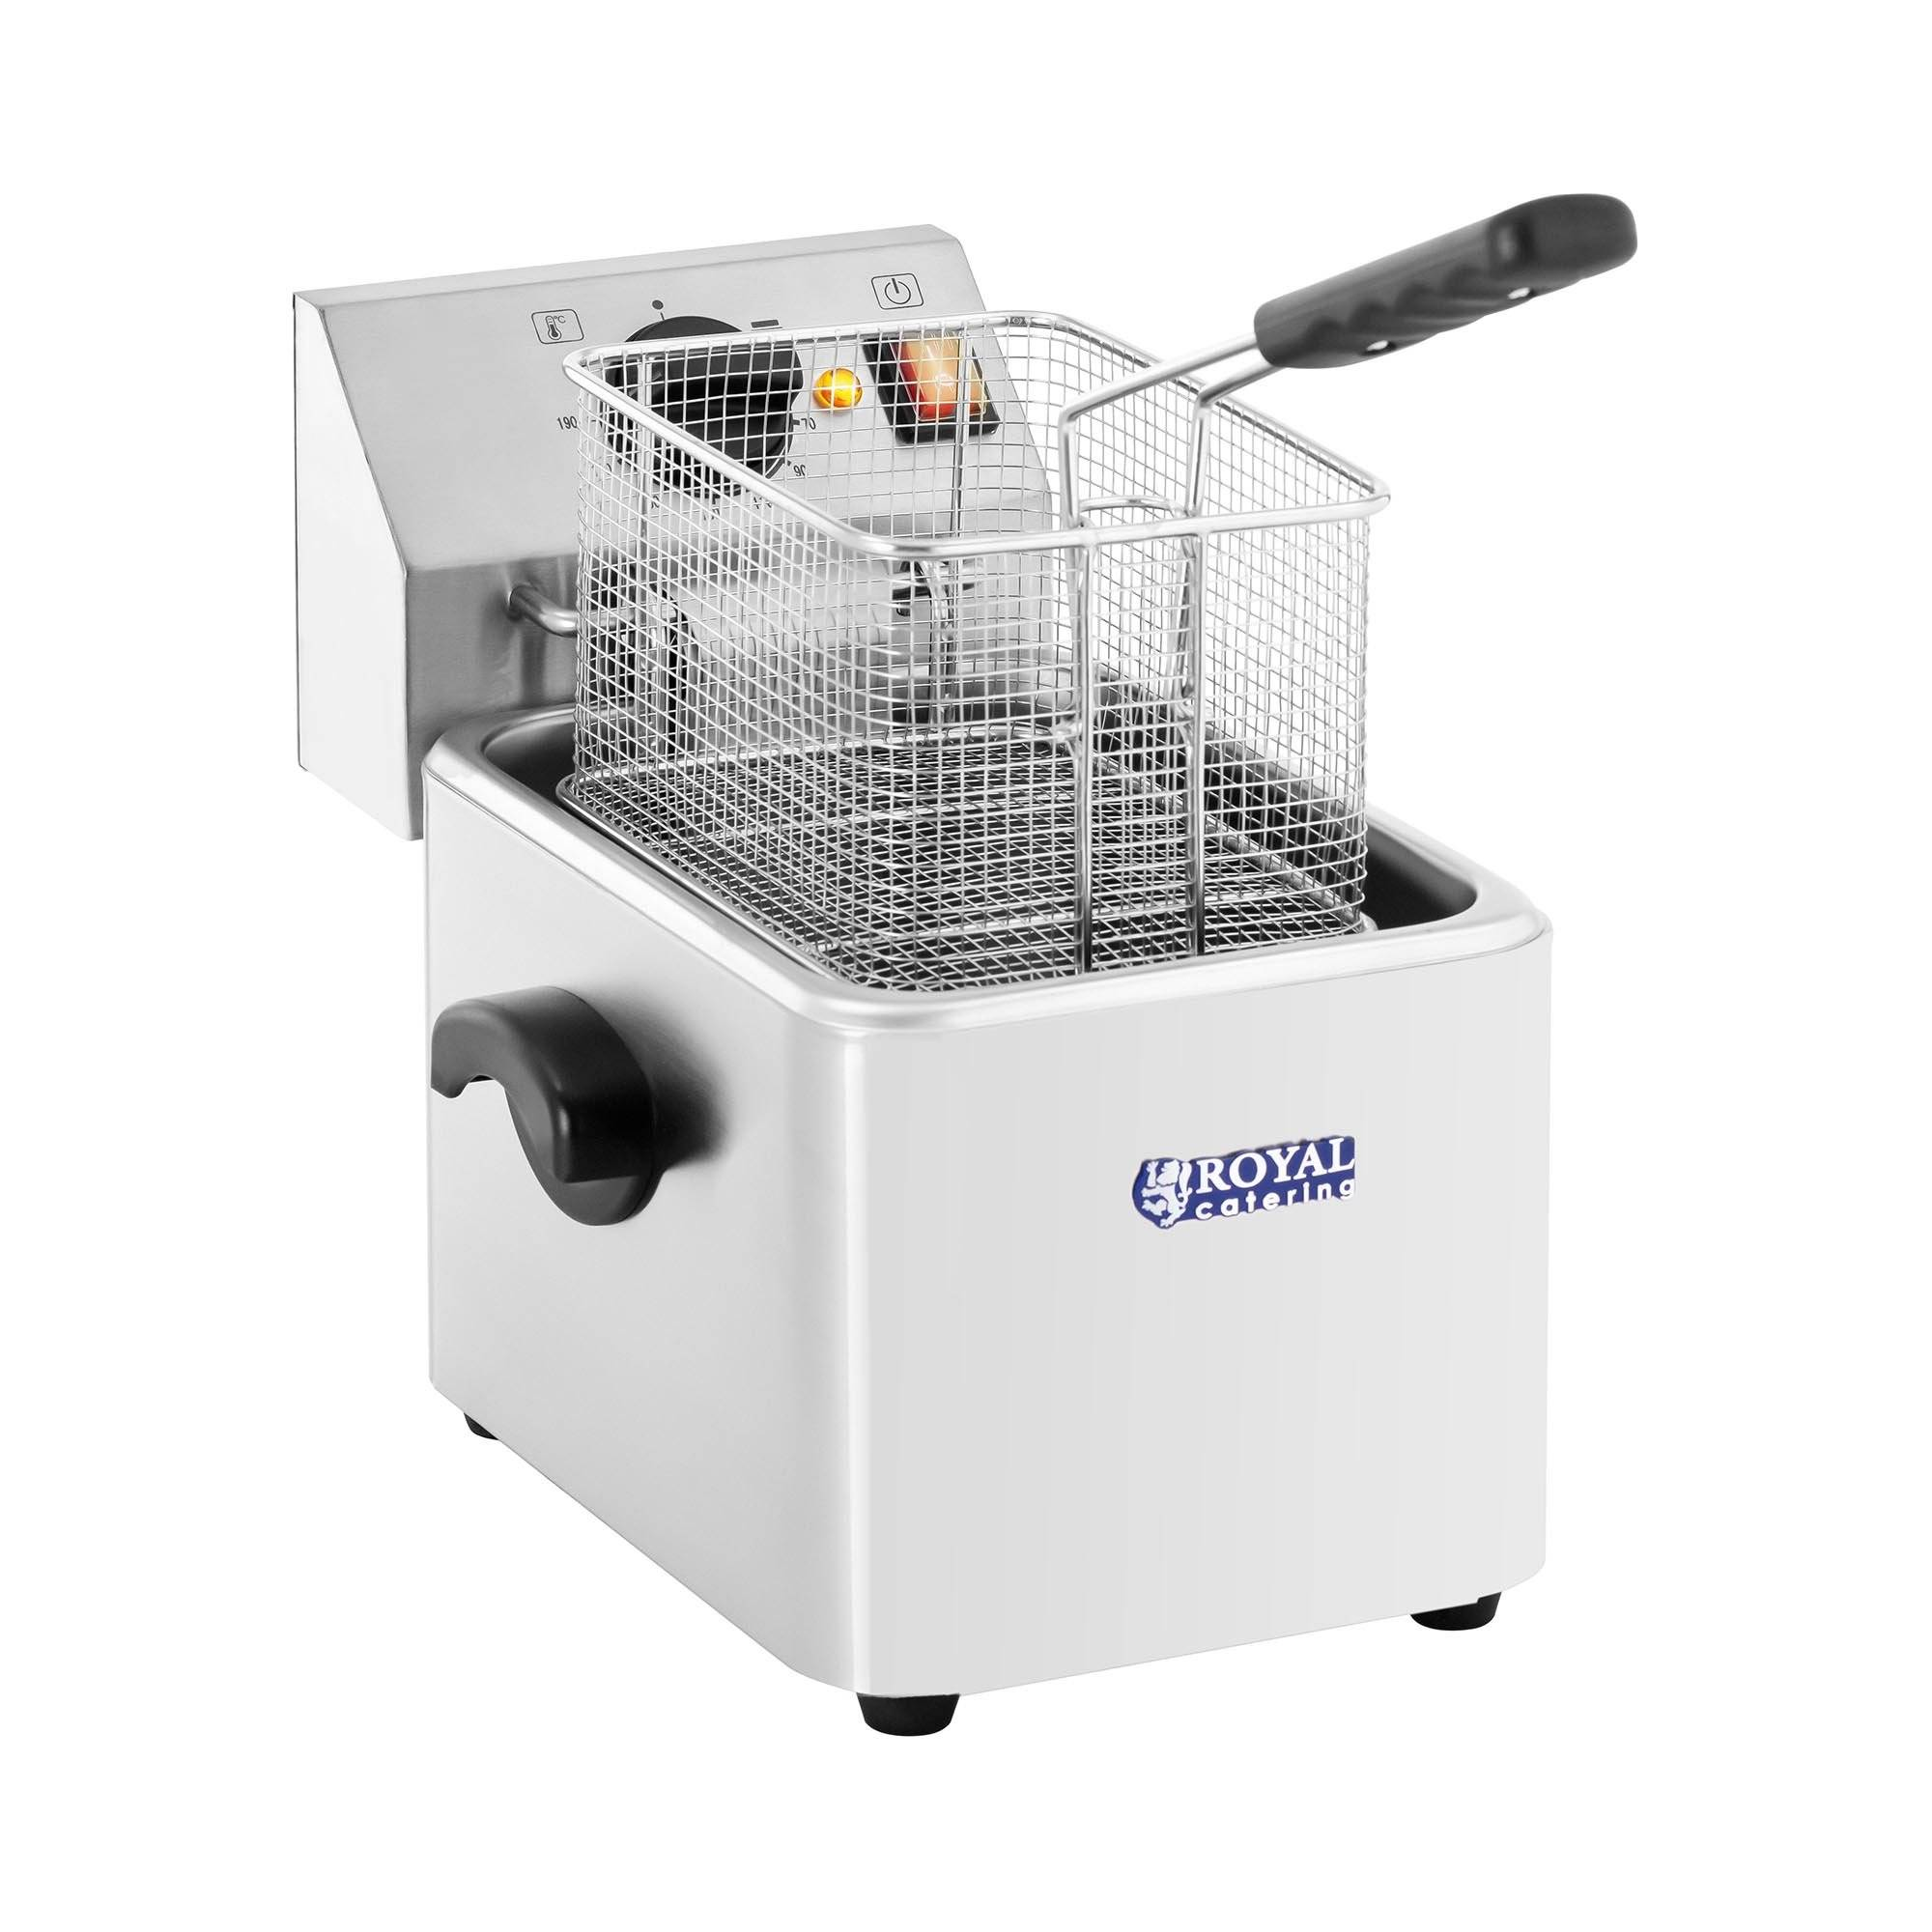 Royal Catering Electrical fryer - 8 L - EGO Thermostat RCEF 08E-EGO